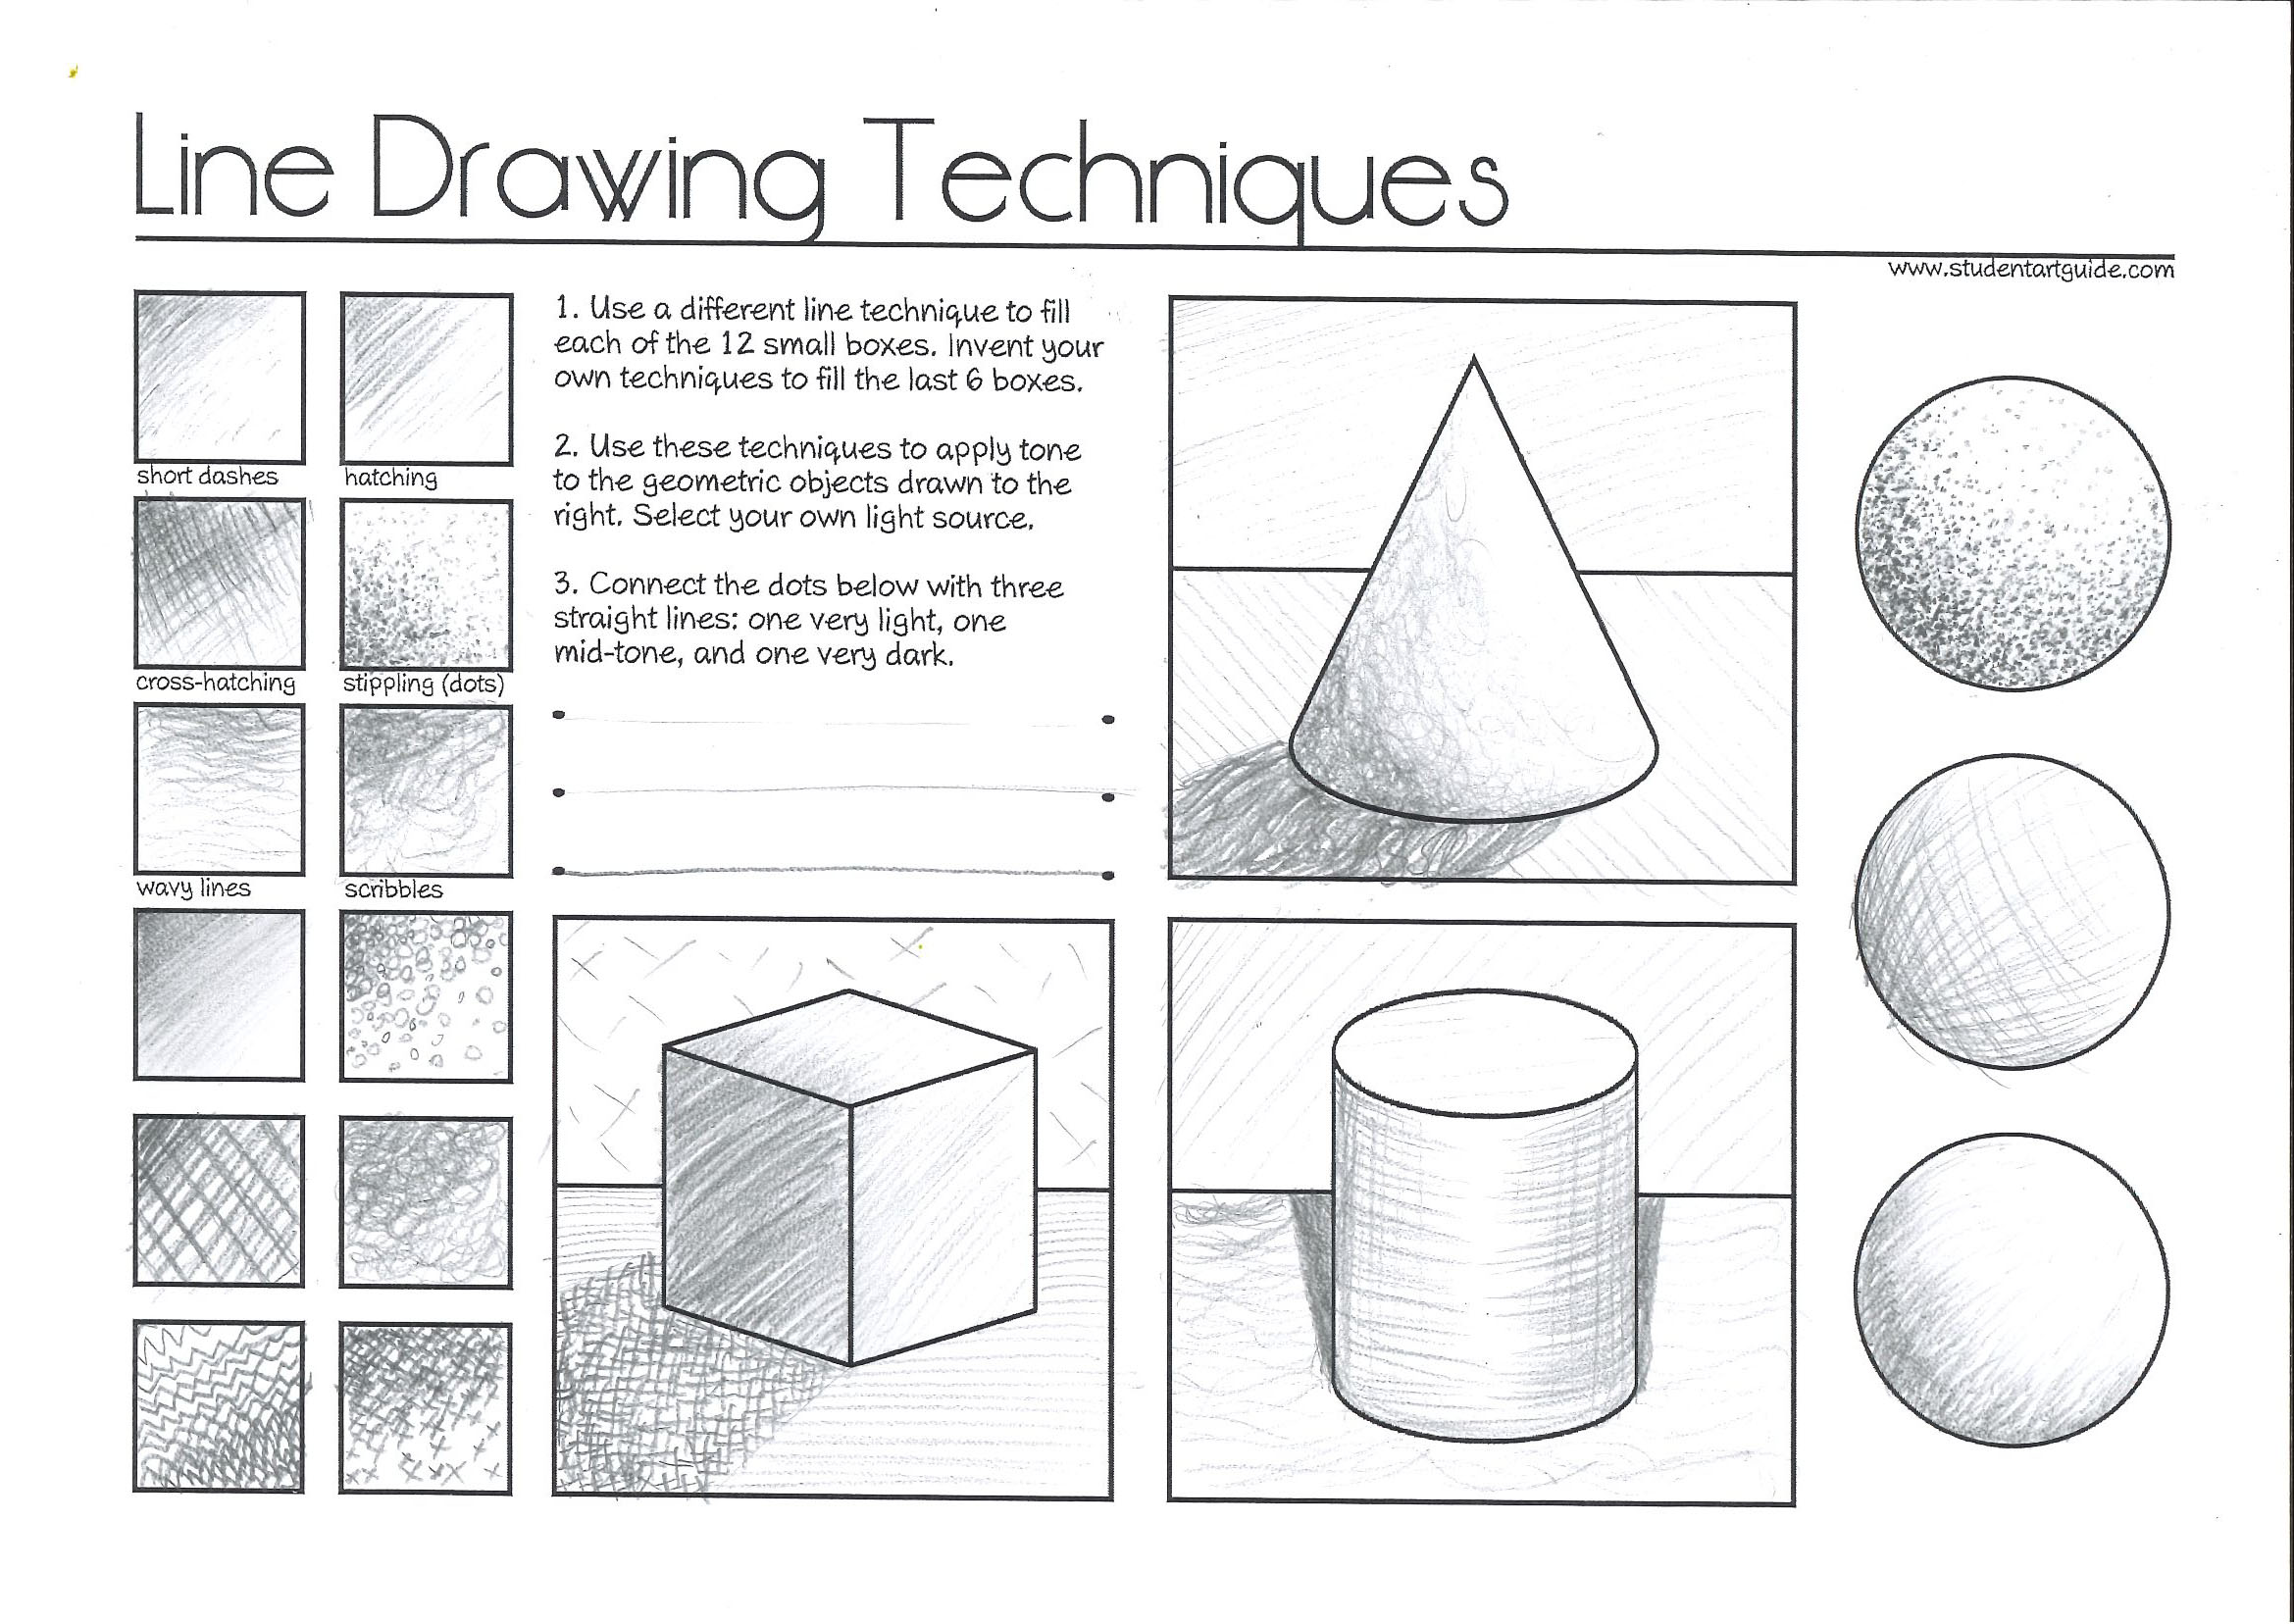 Line Drawing Techniques Jevans Game Design